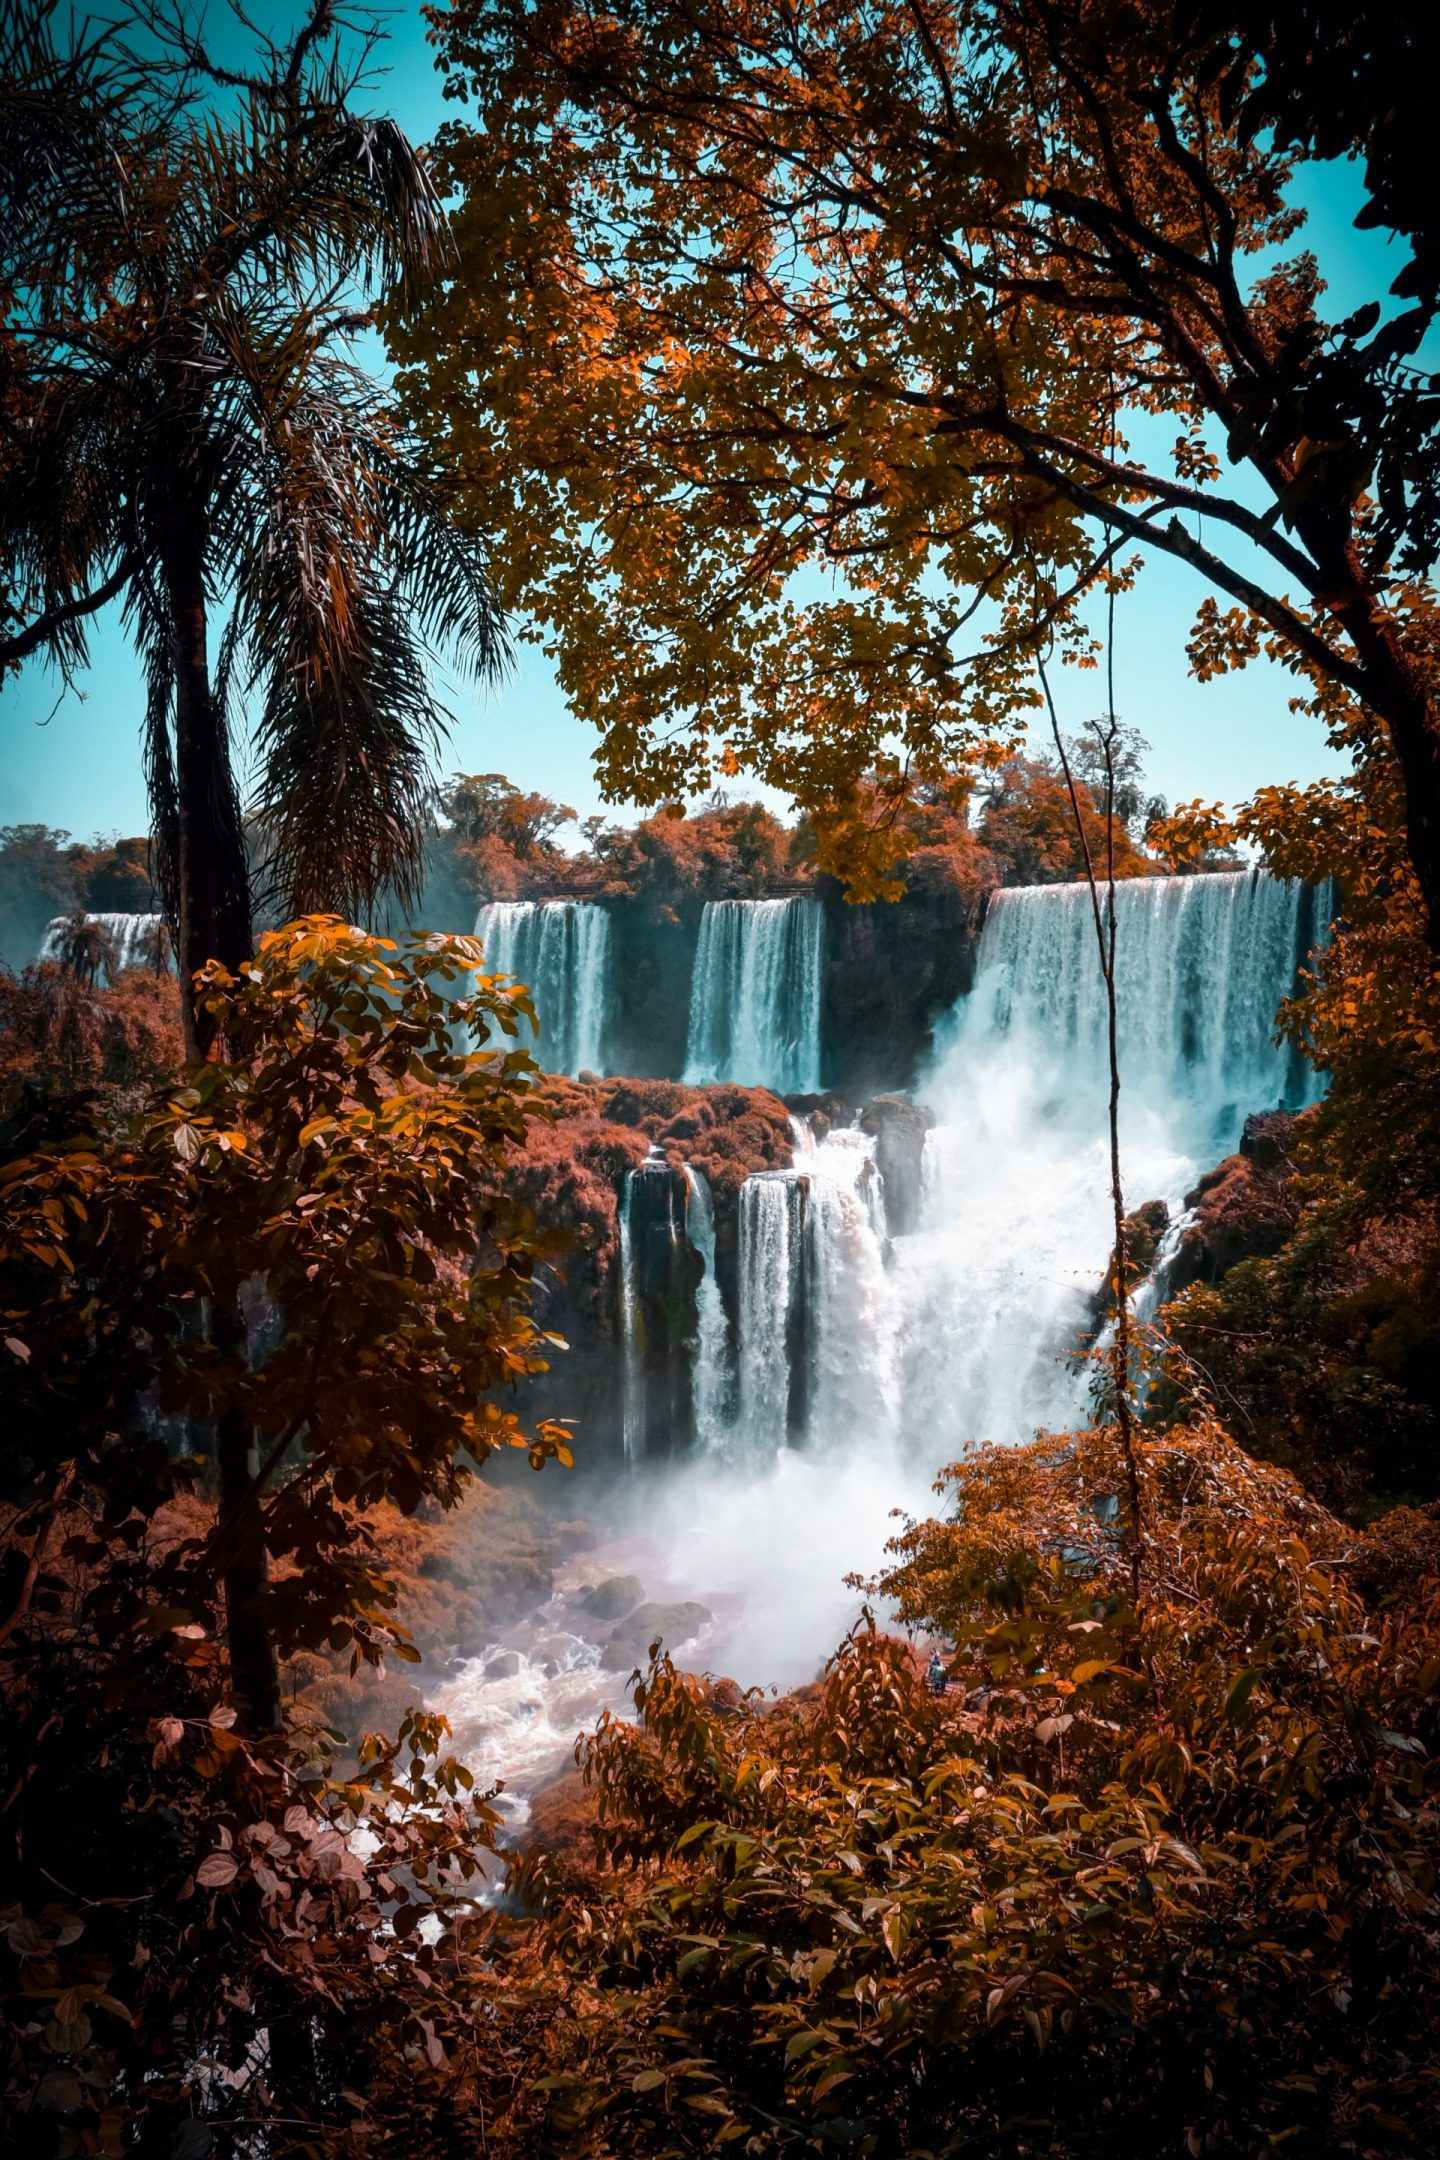 waterfalls in argentina, Iguazu Falls in Argentina, 20 destinations to visit in 2020, travel inspirations